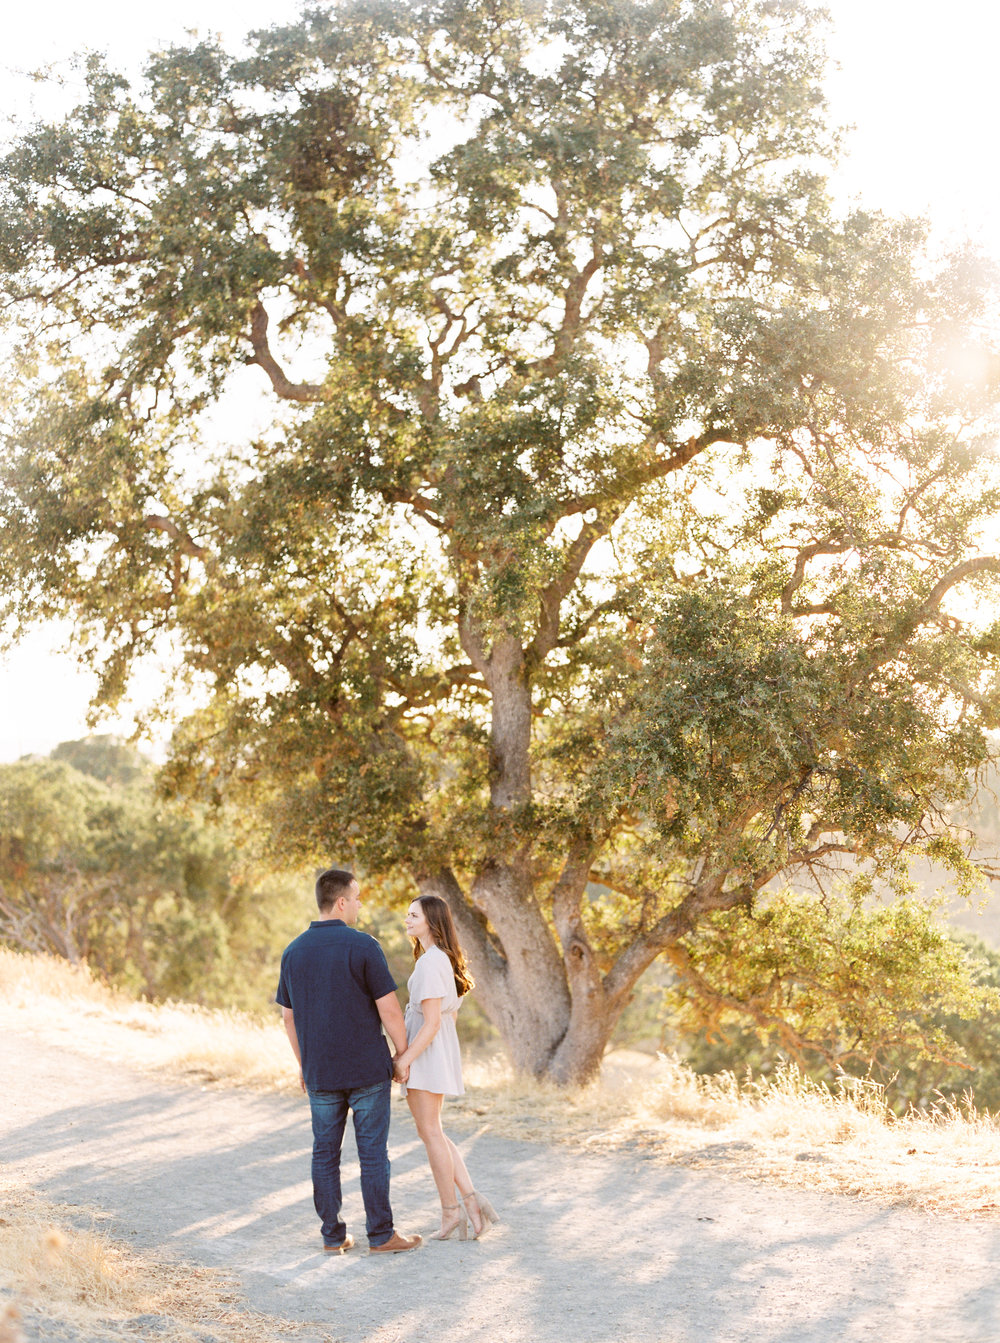 del-valle-livermore-engagement-34.jpg